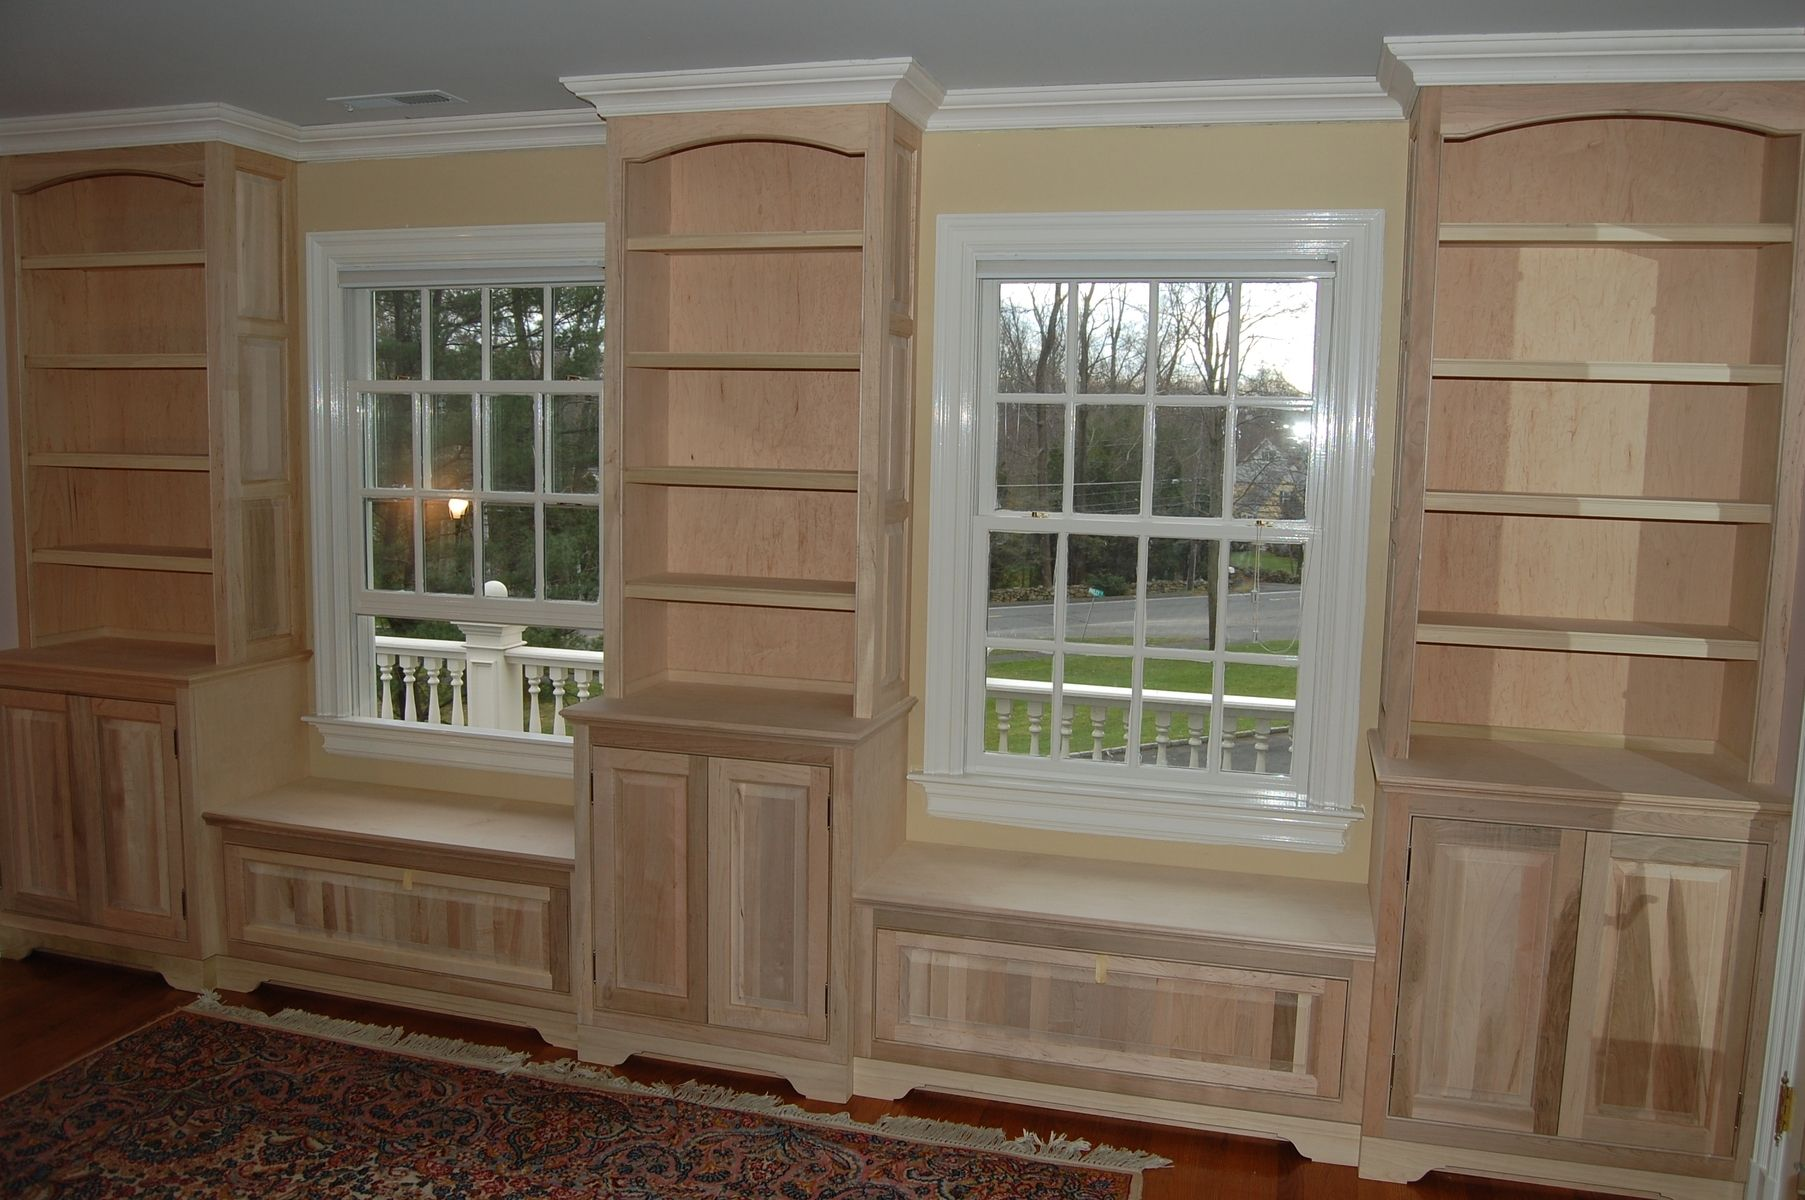 Hand Made Bedroom Built Ins by John Samuel Custom Cabinetry ...